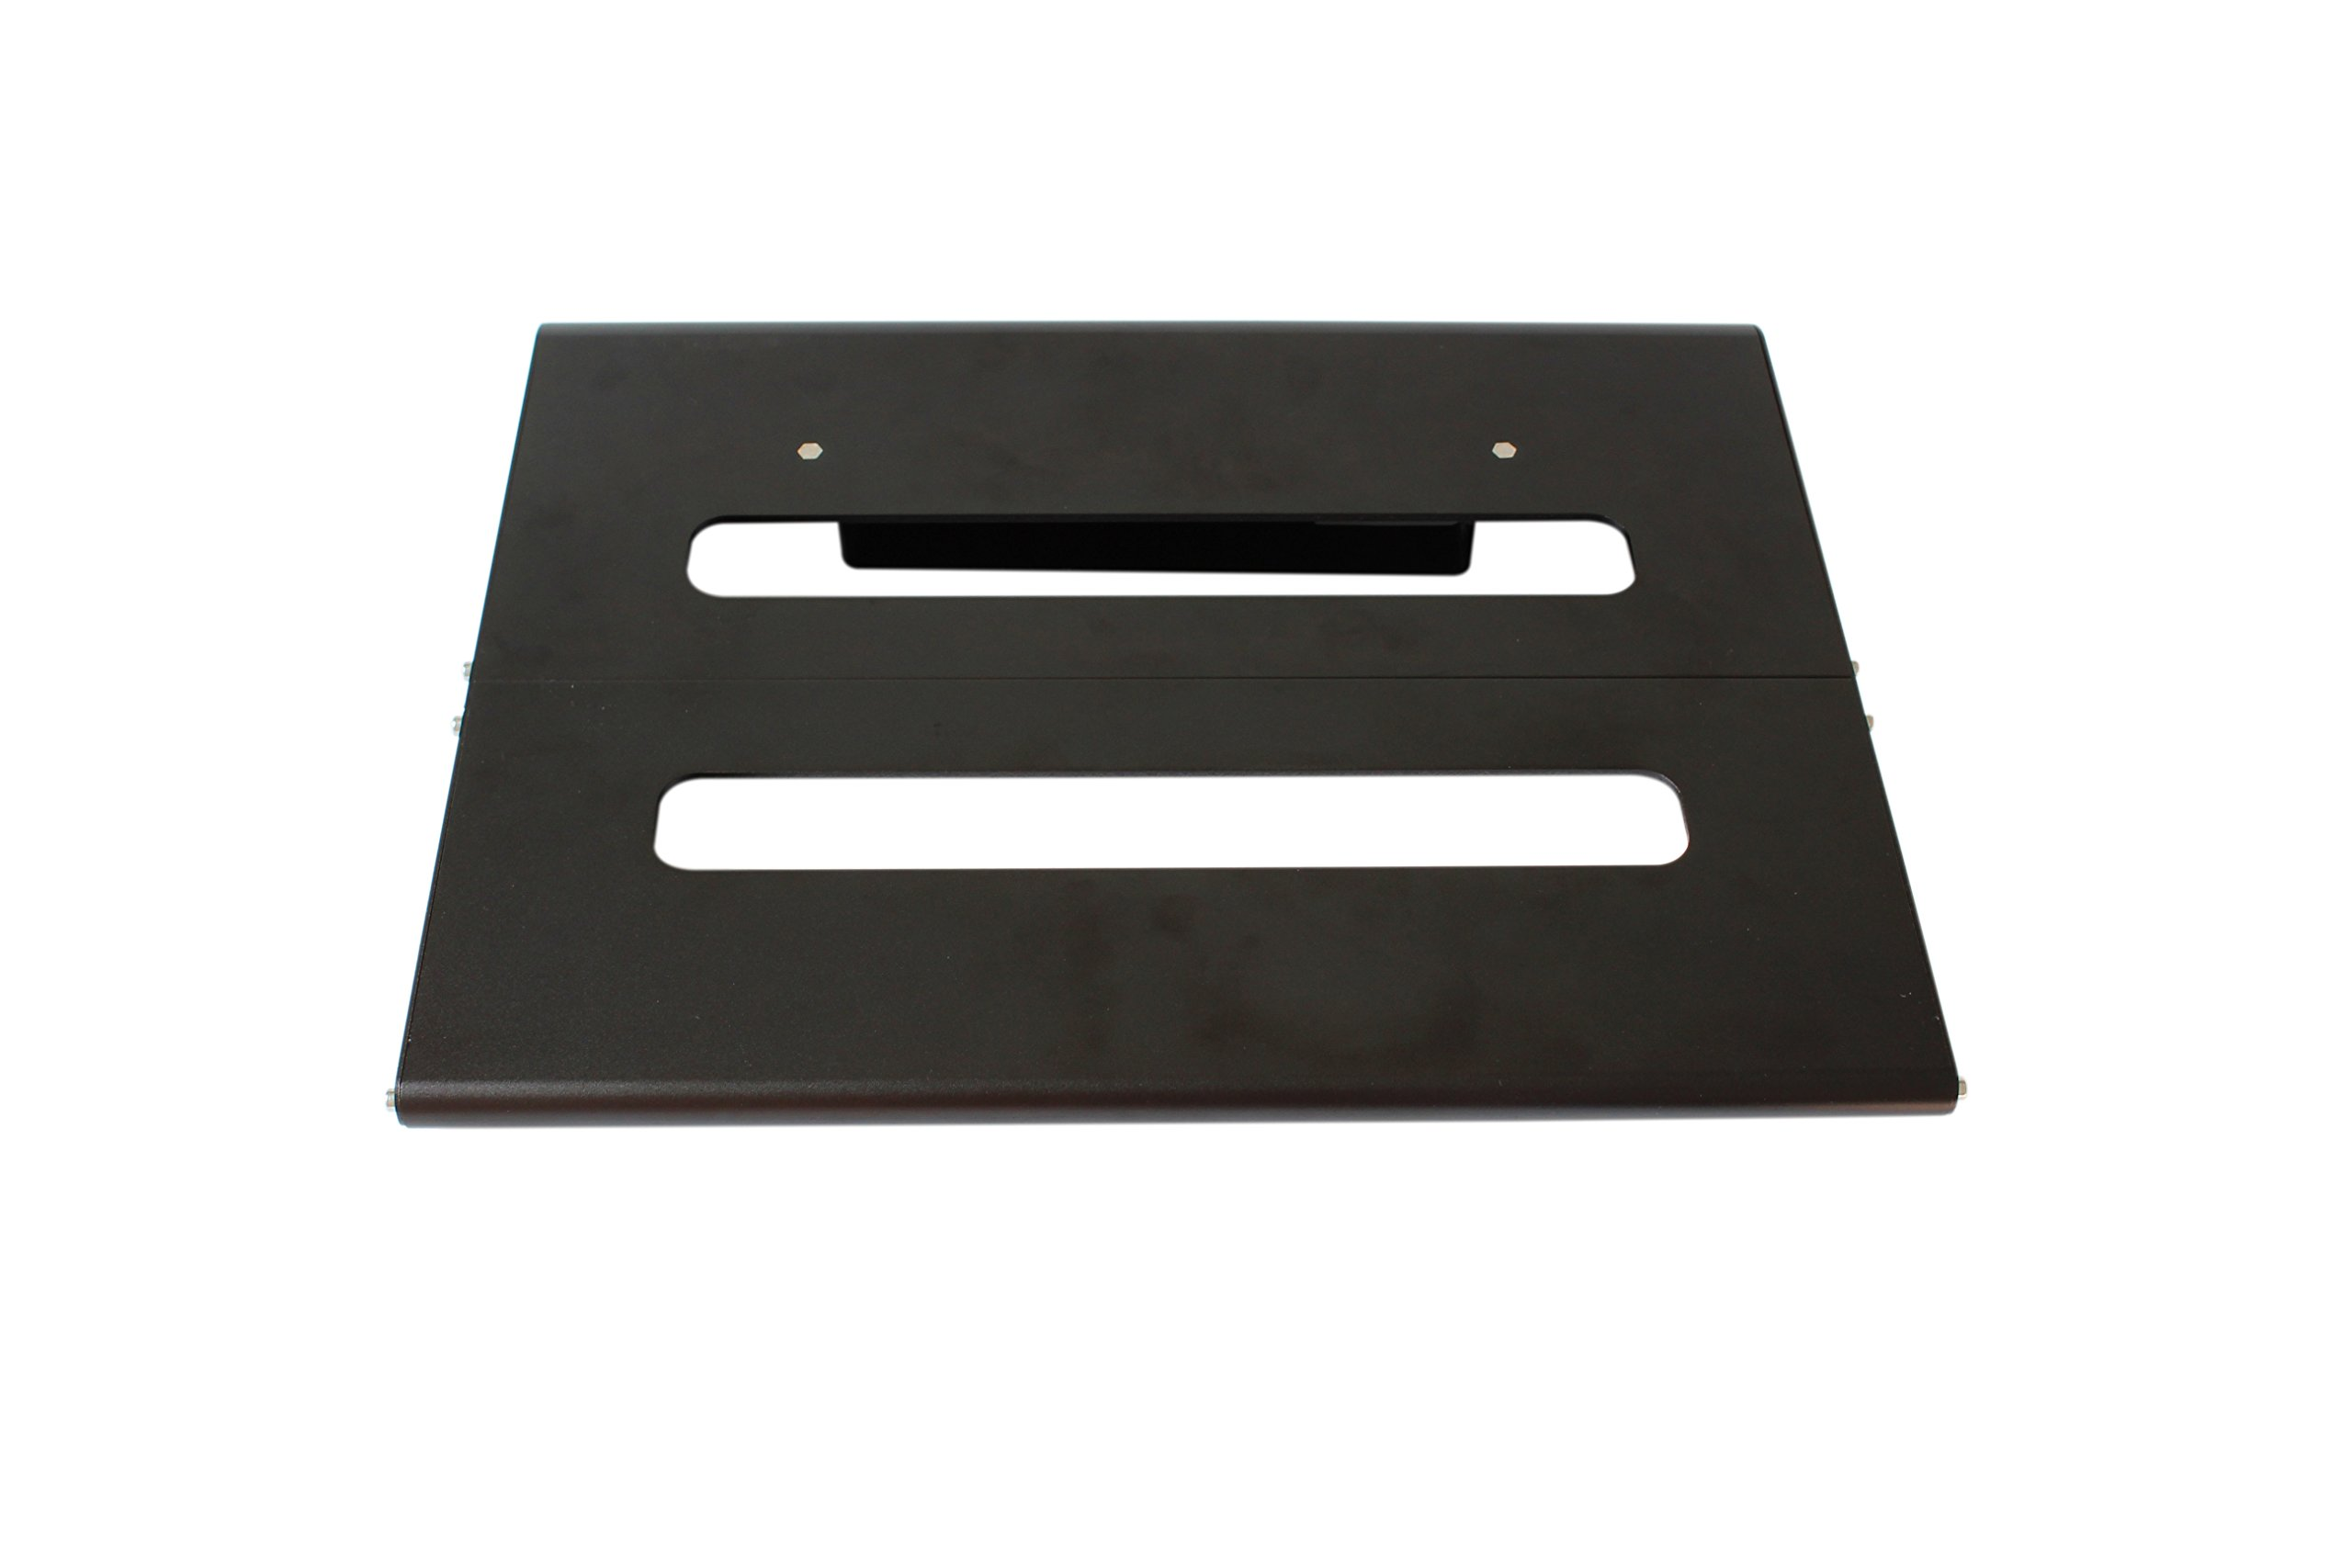 KOKKO Guitar Pedal Board Case KB-02 Al alloy Pedalboard with Carrying Bag by kokko